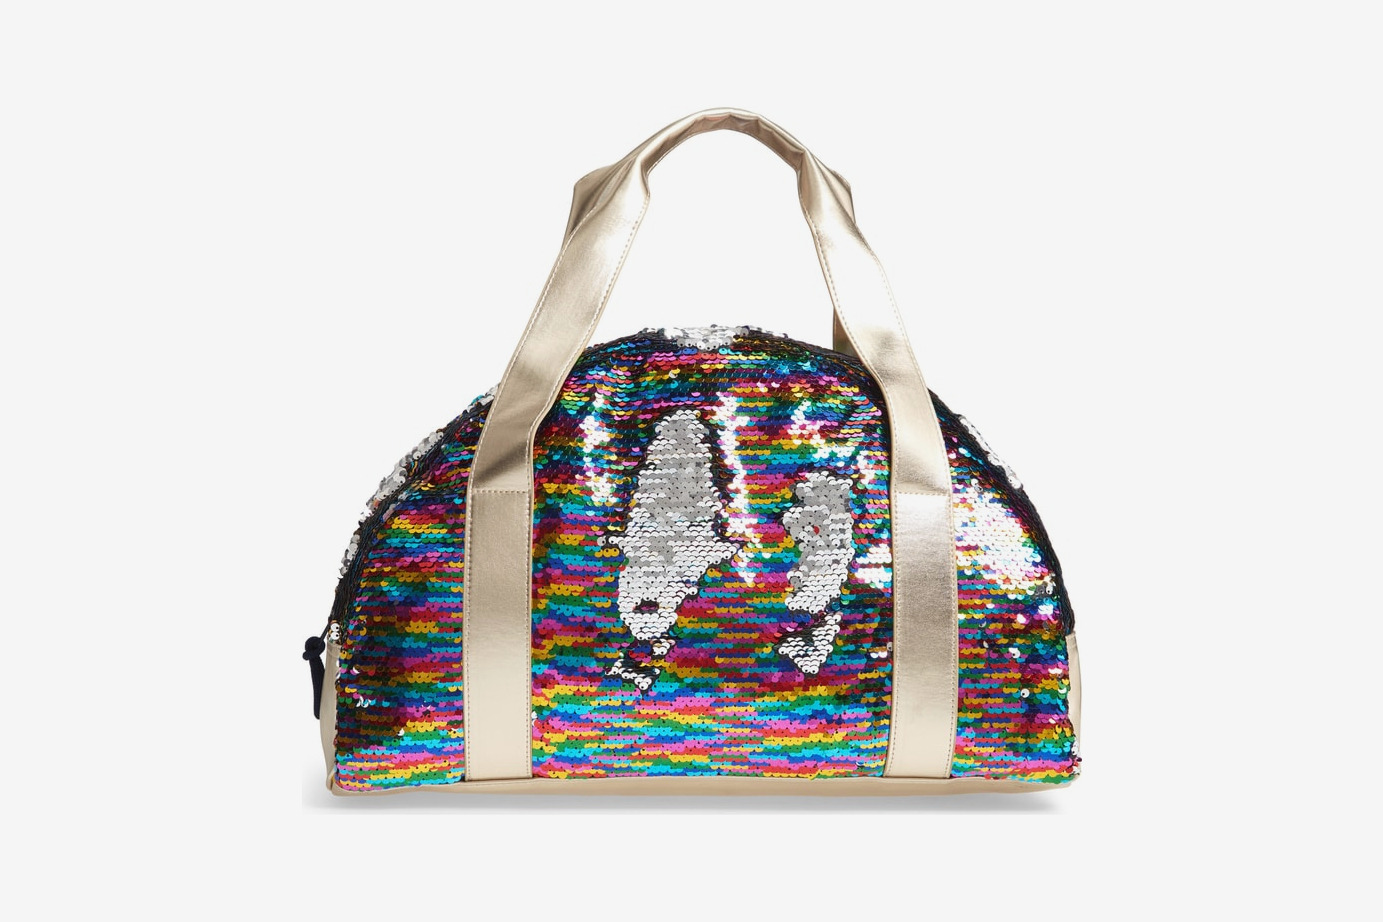 Crewcuts by J.Crew Overnight Bag with Reversible Sequins